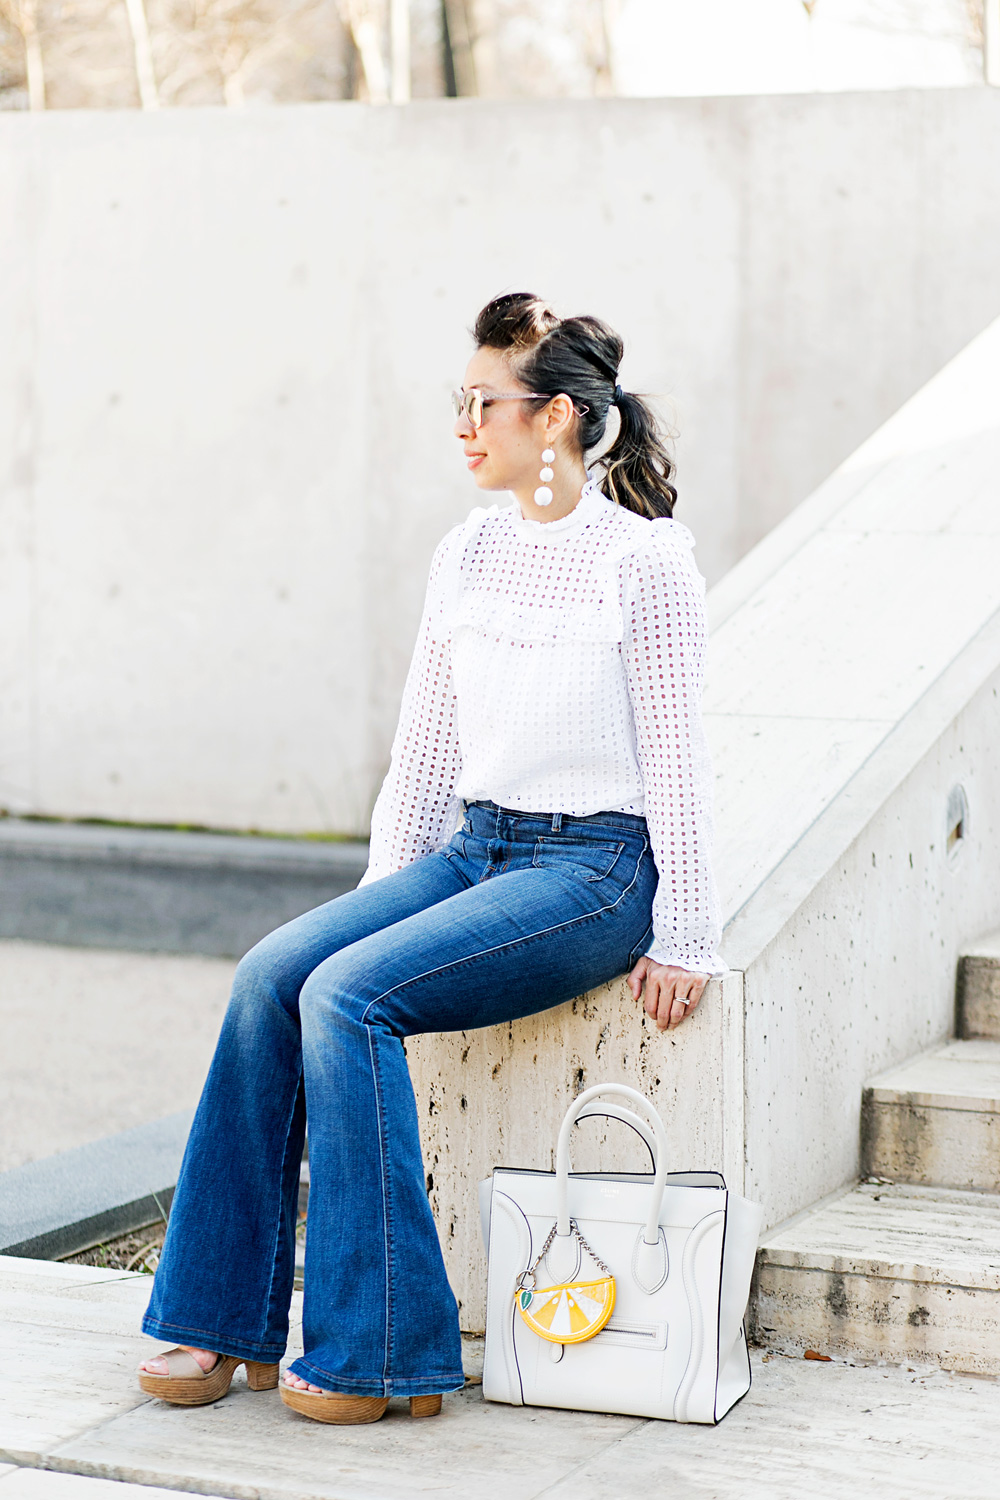 who what wear x target eyelet top w/ baublebar crispin drop earrings and jbrand flare jeans, celine white luggage tote, how to make a cheap top look expensive